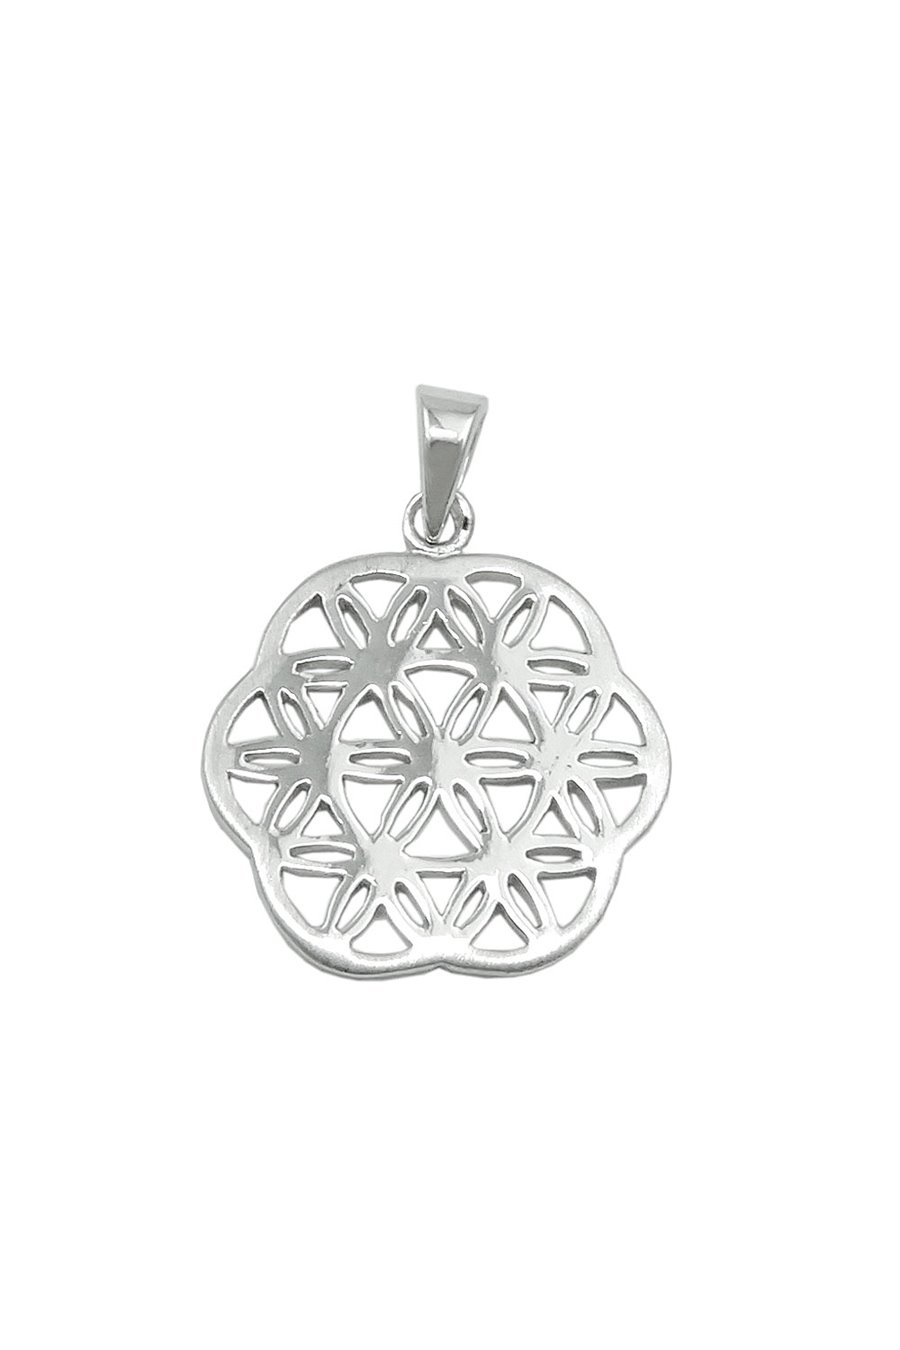 PENDANT FLOWER OF LIFE SILVER 925